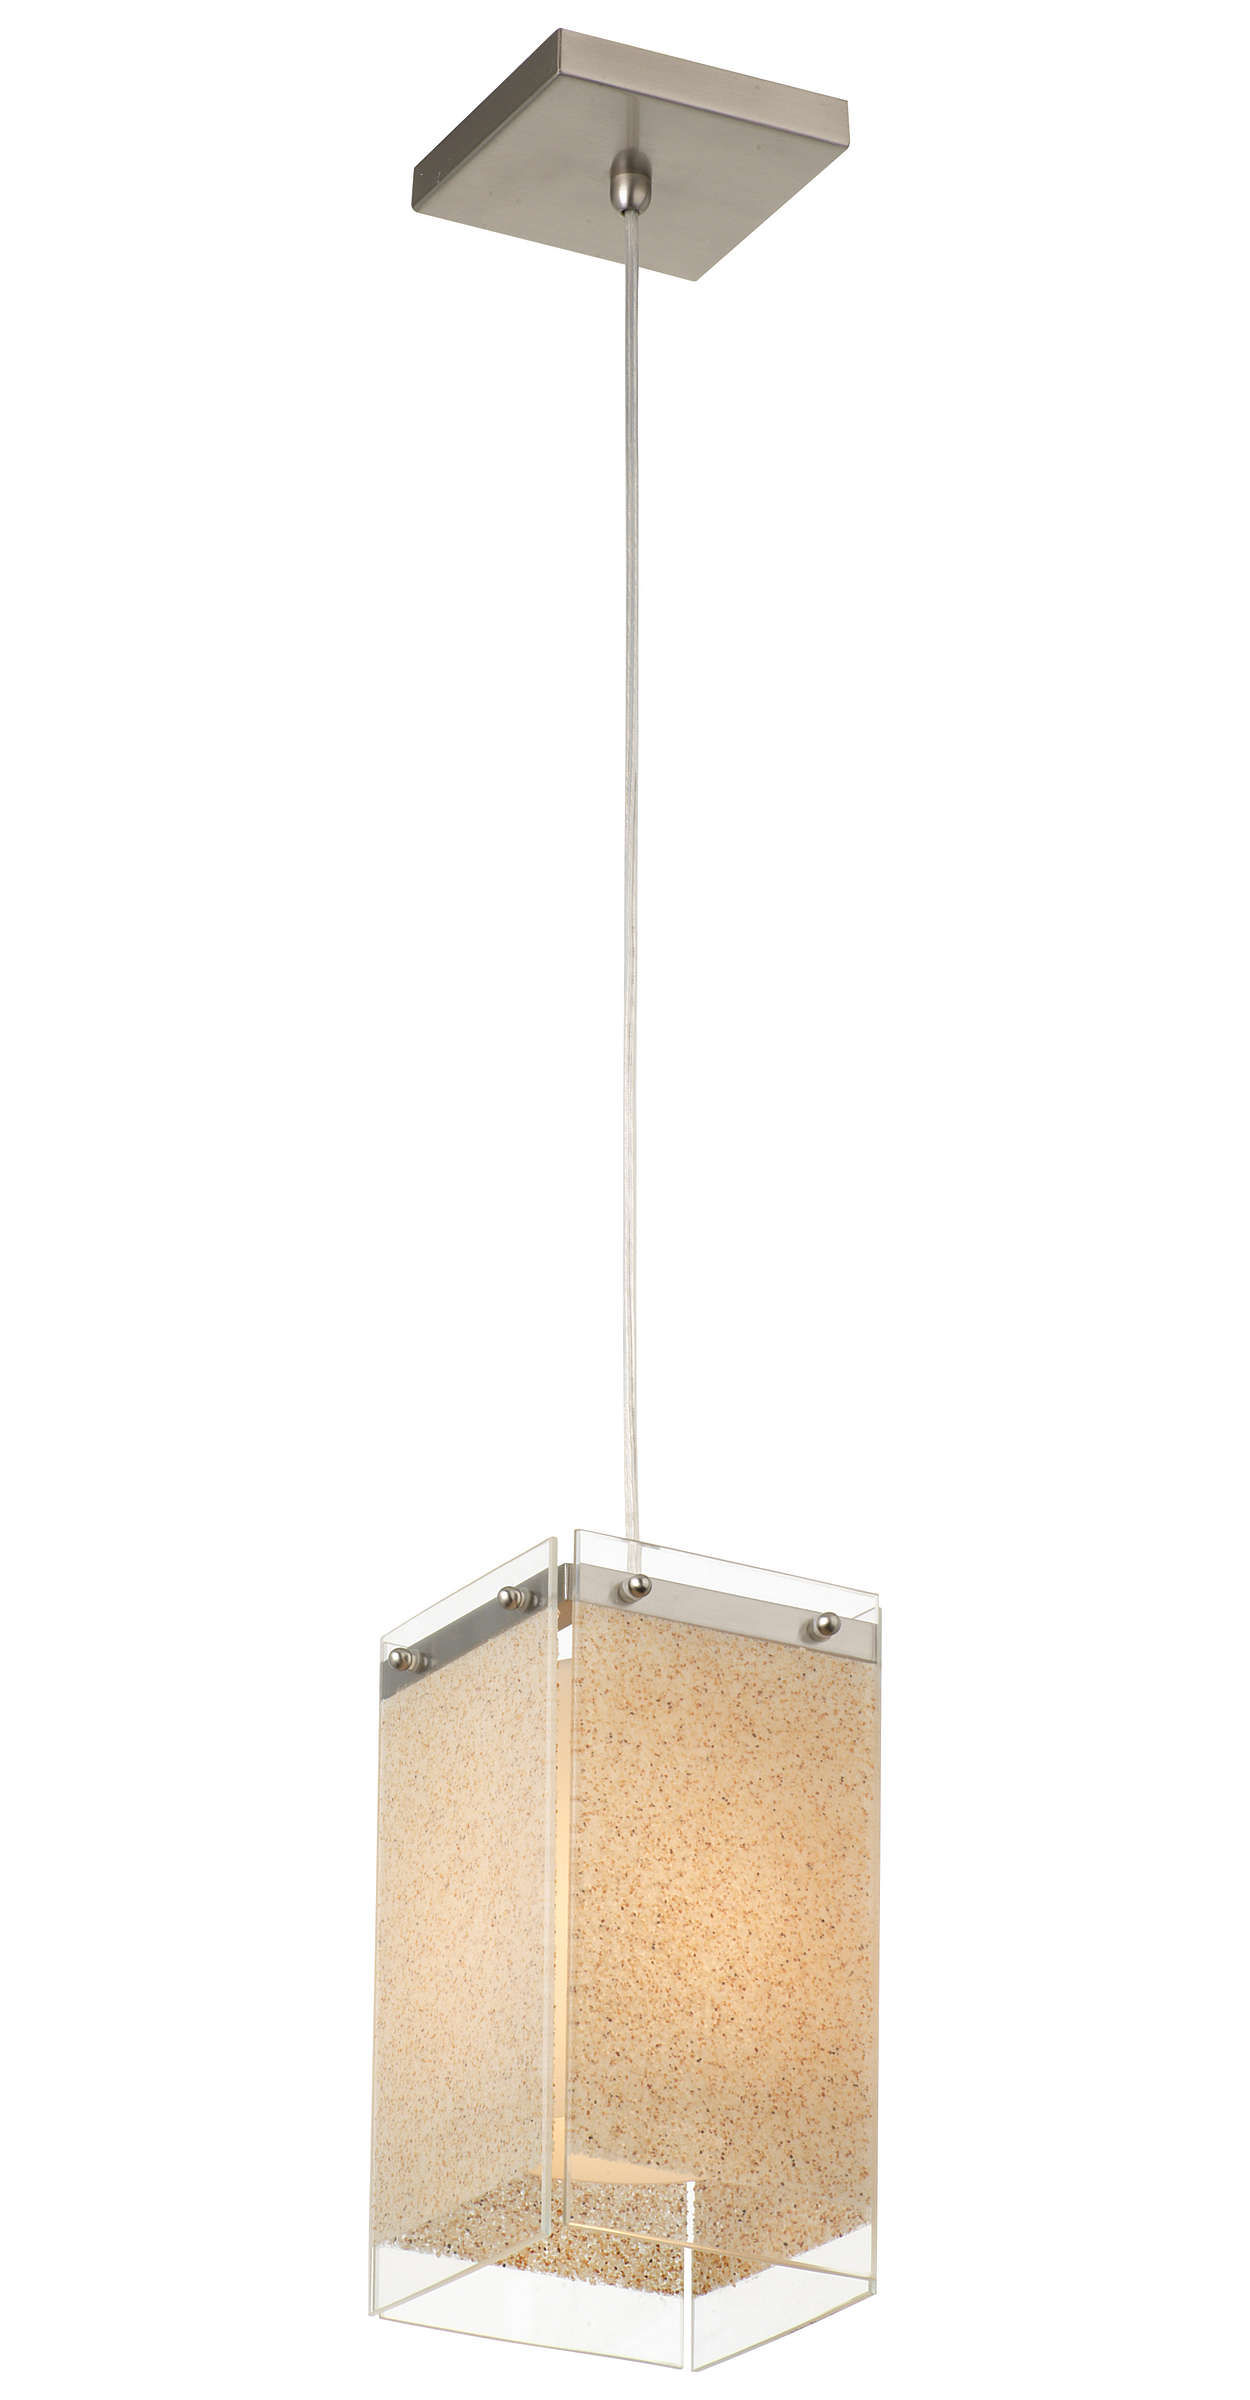 Pacifica 1-light Pendant in Satin Nickel finish